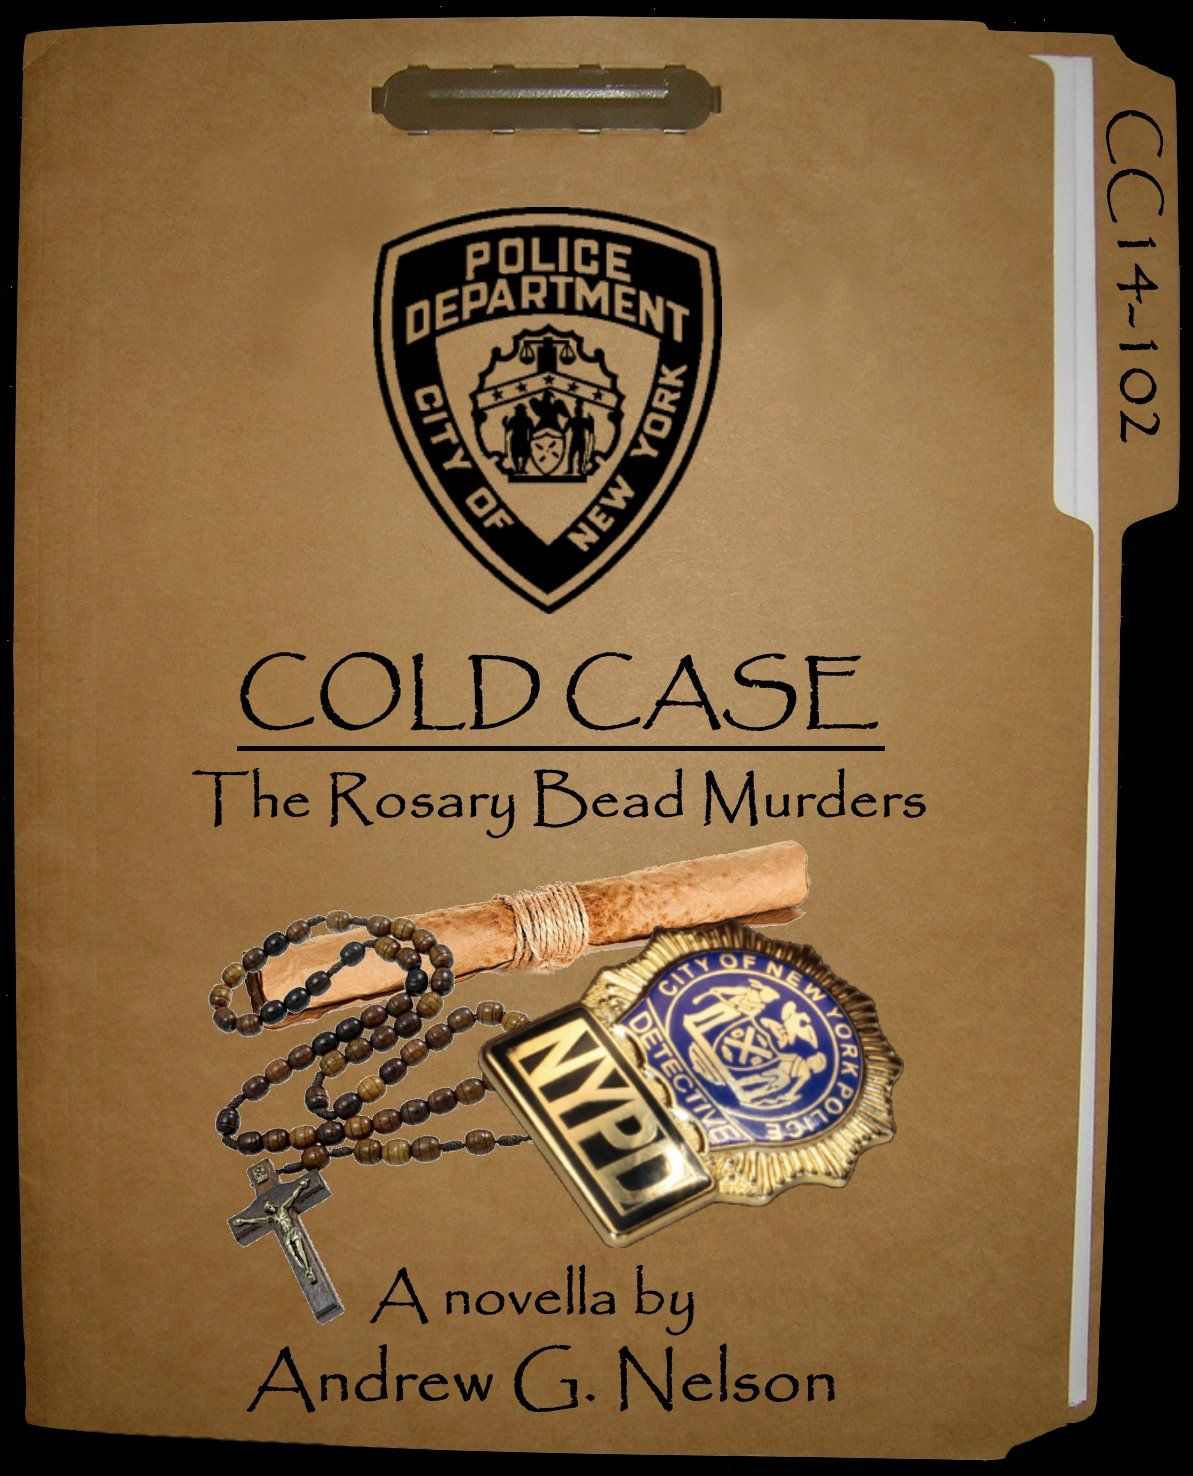 NYPD Cold Case: The Rosary Bead Murders